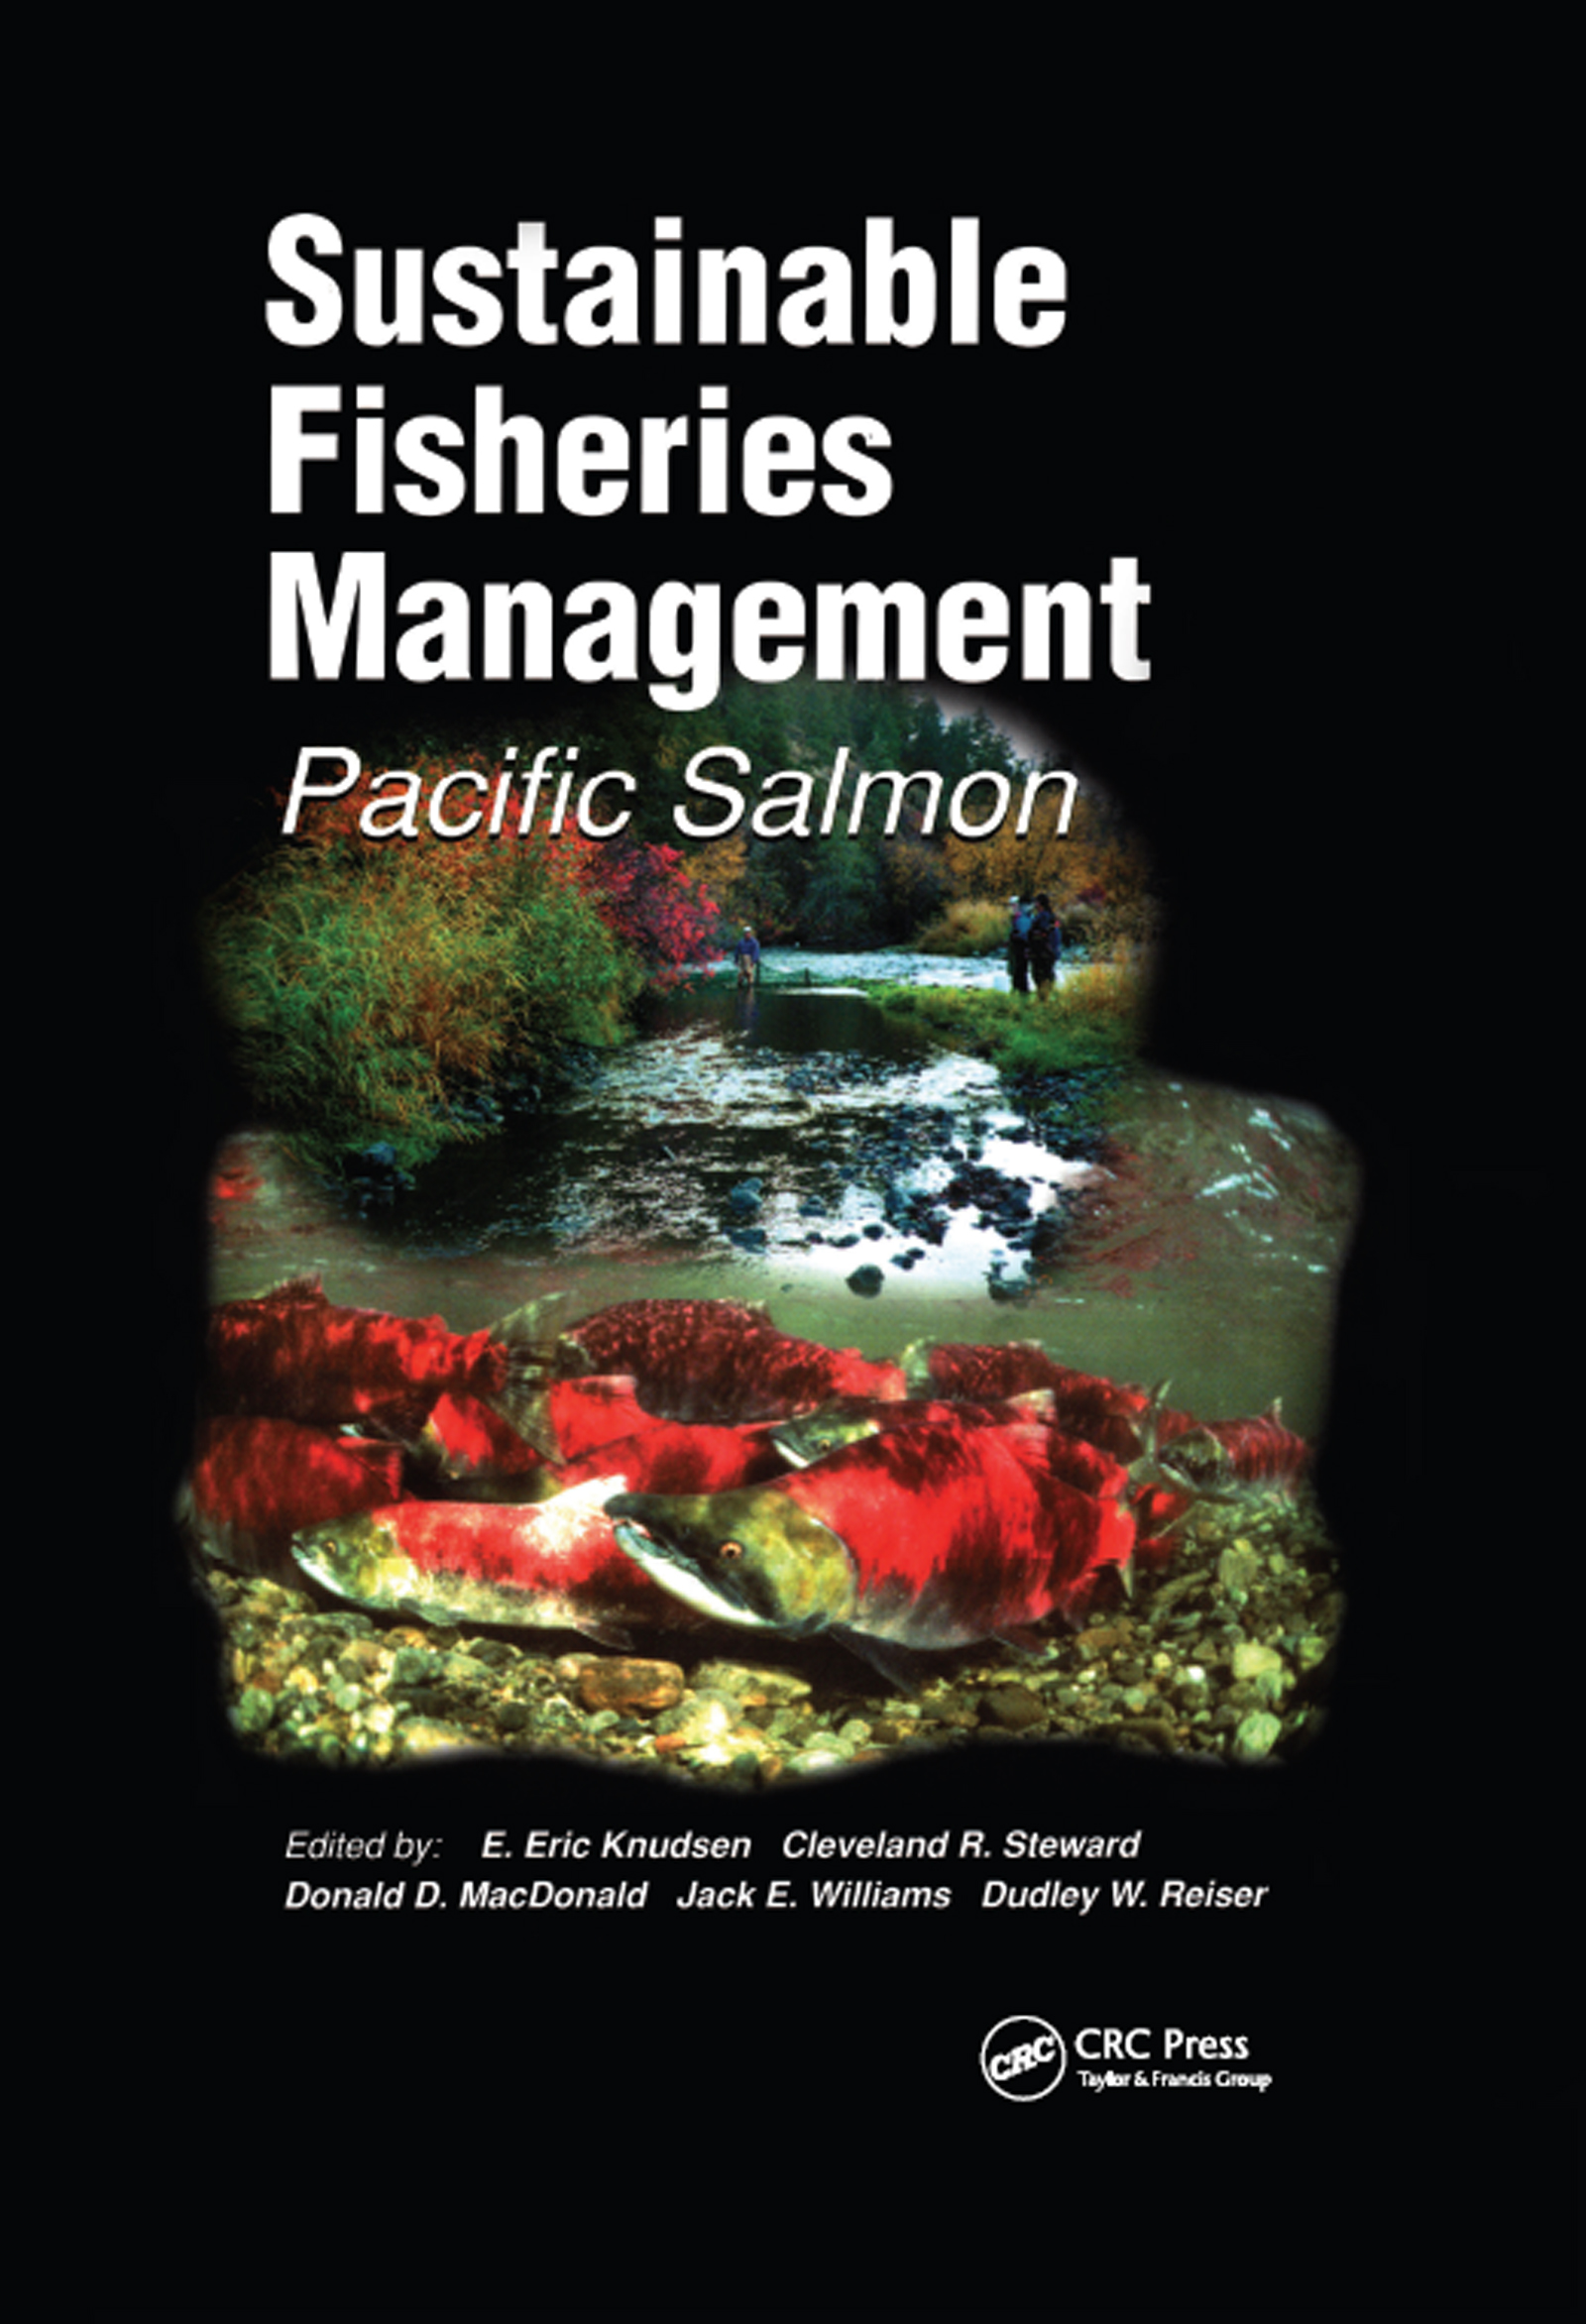 Endangered Species Act Review of the Status of Pink Salmon from Washington, Oregon, and California